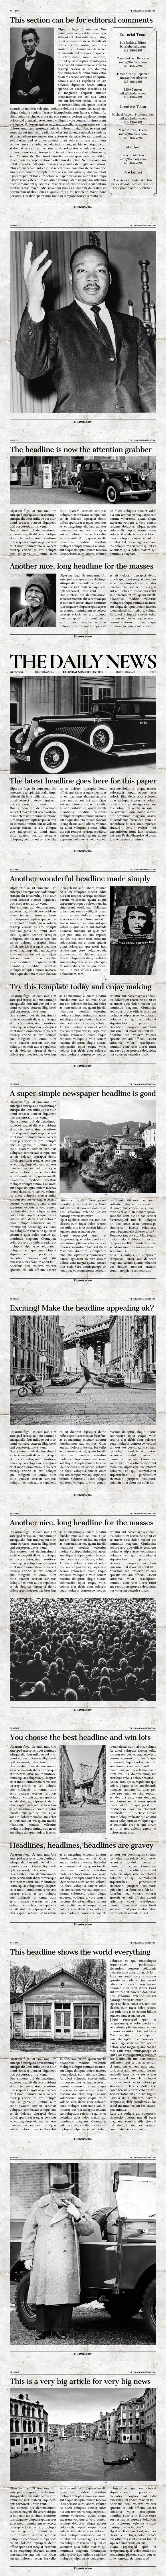 Vintage InDesign Newspaper Template #vintagenewspaper #1920snewspaper